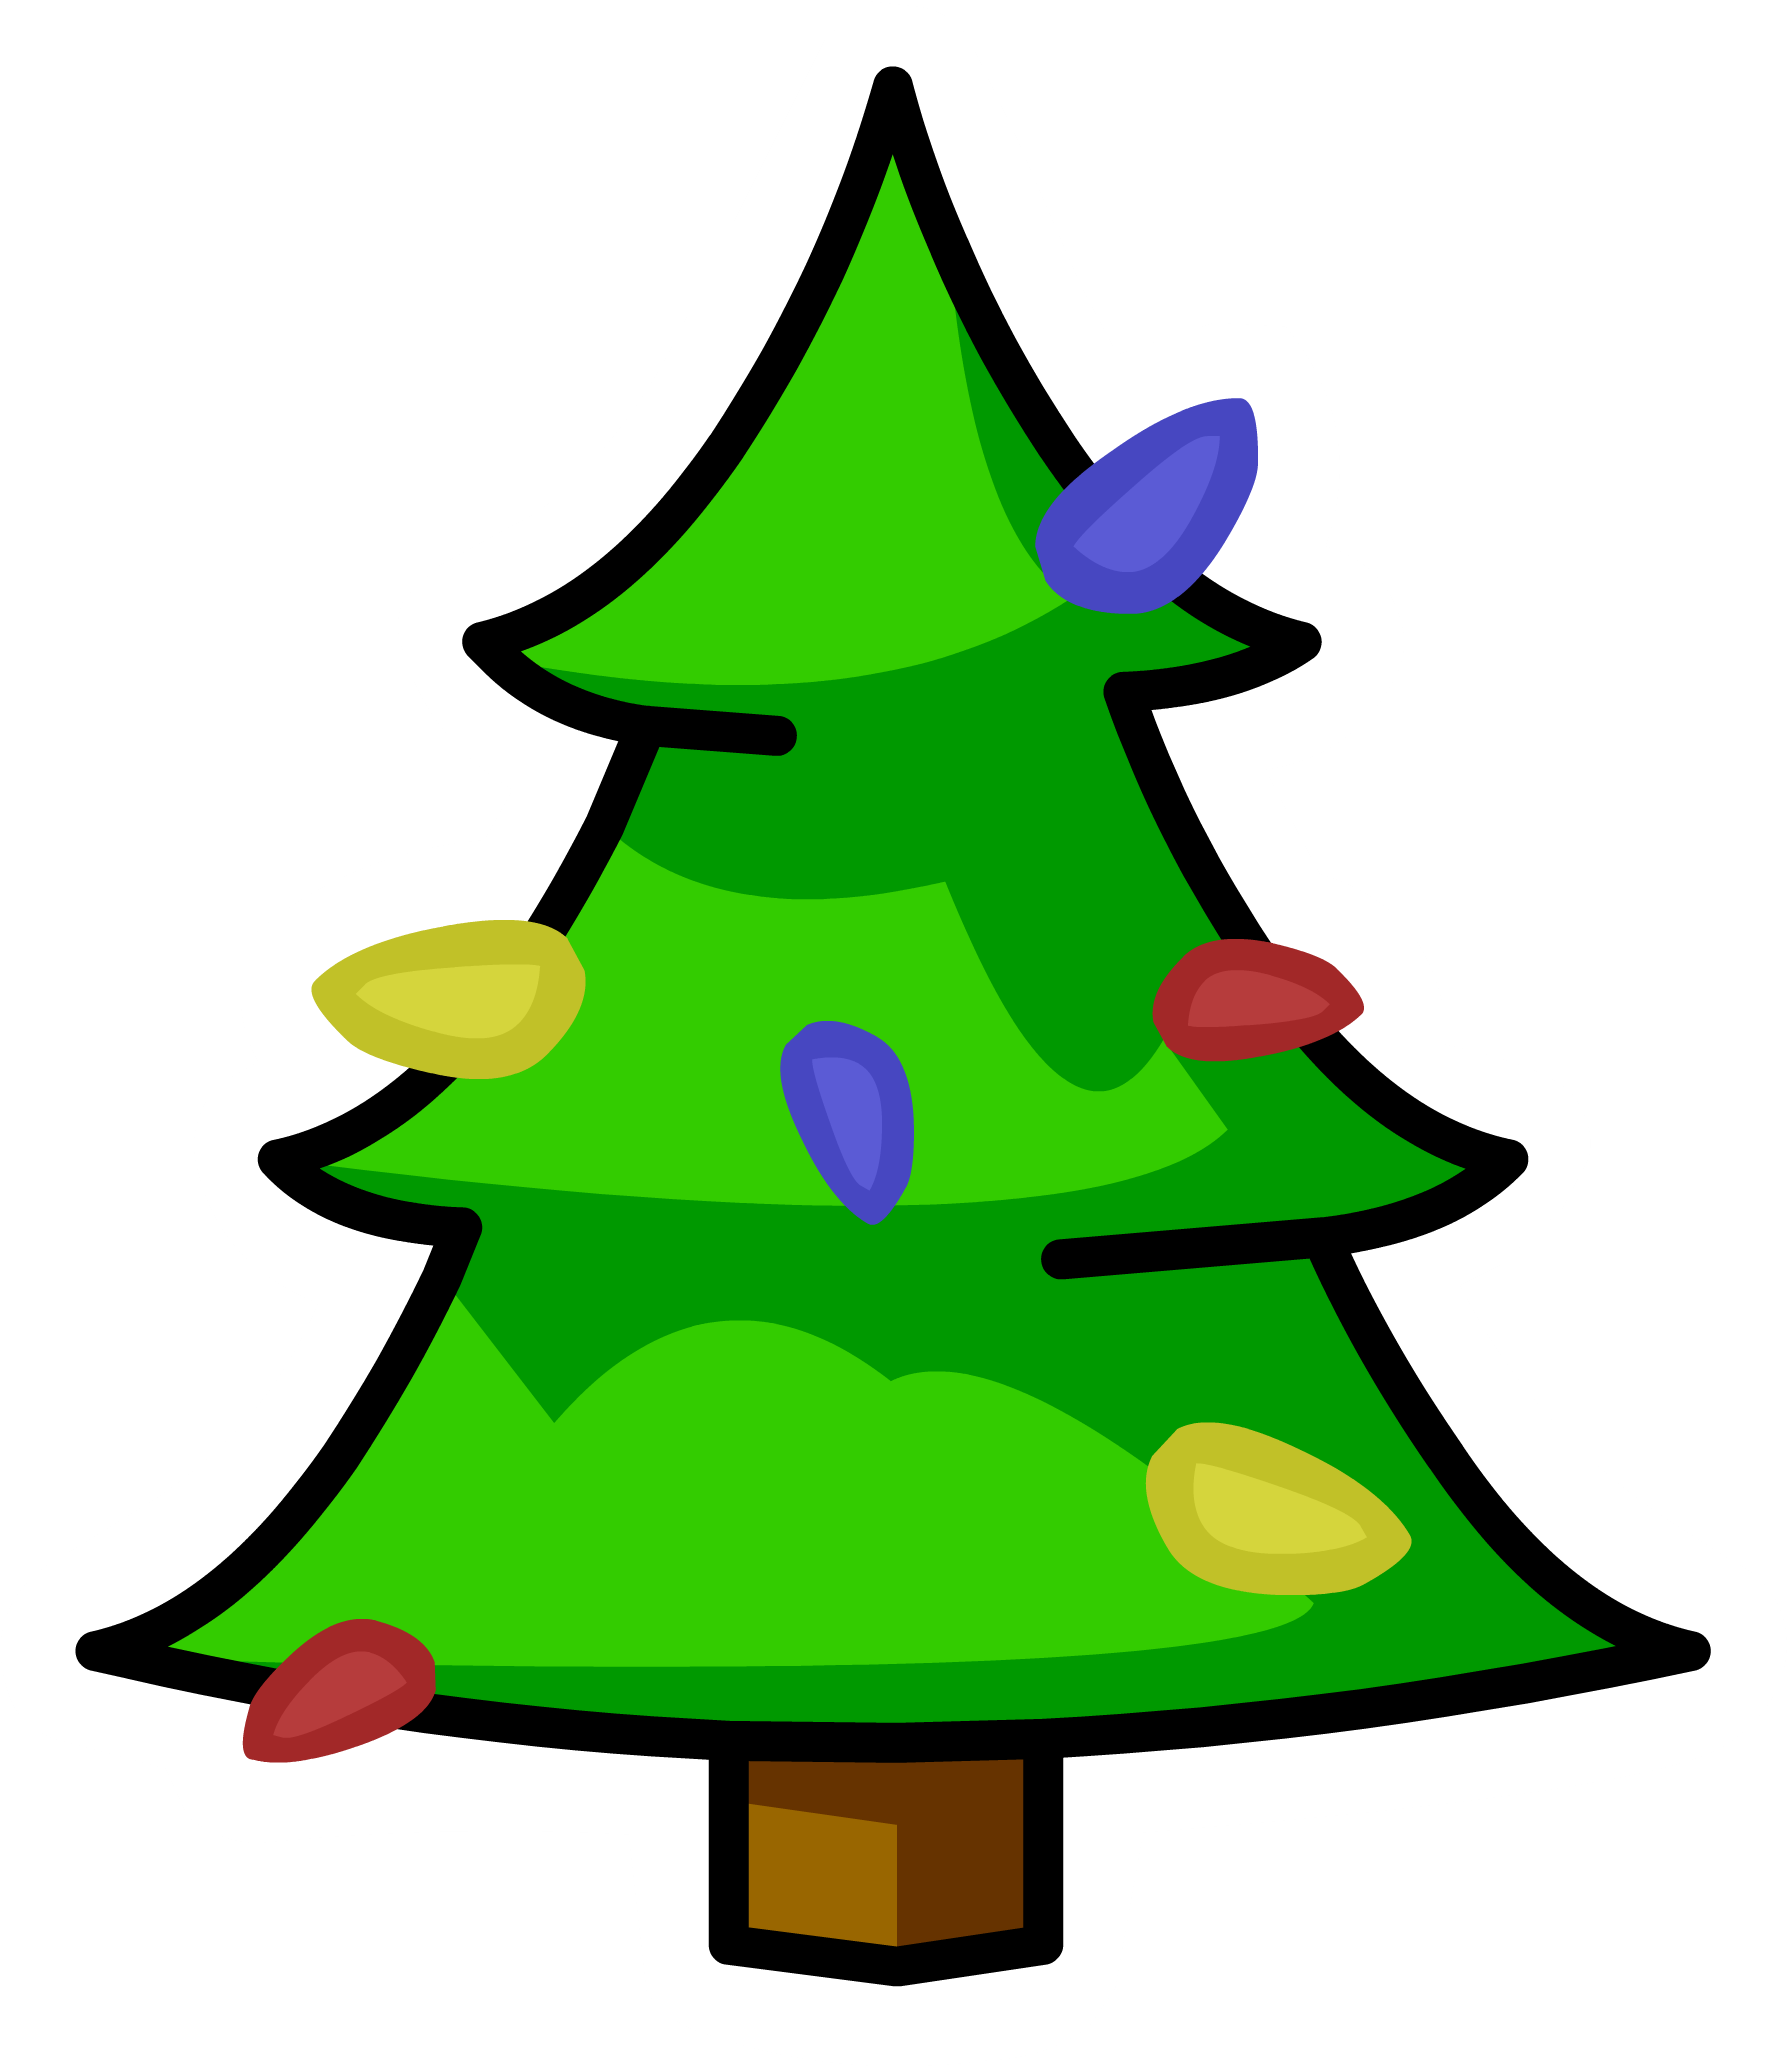 Costume clipart christmas tree. Image pin png club